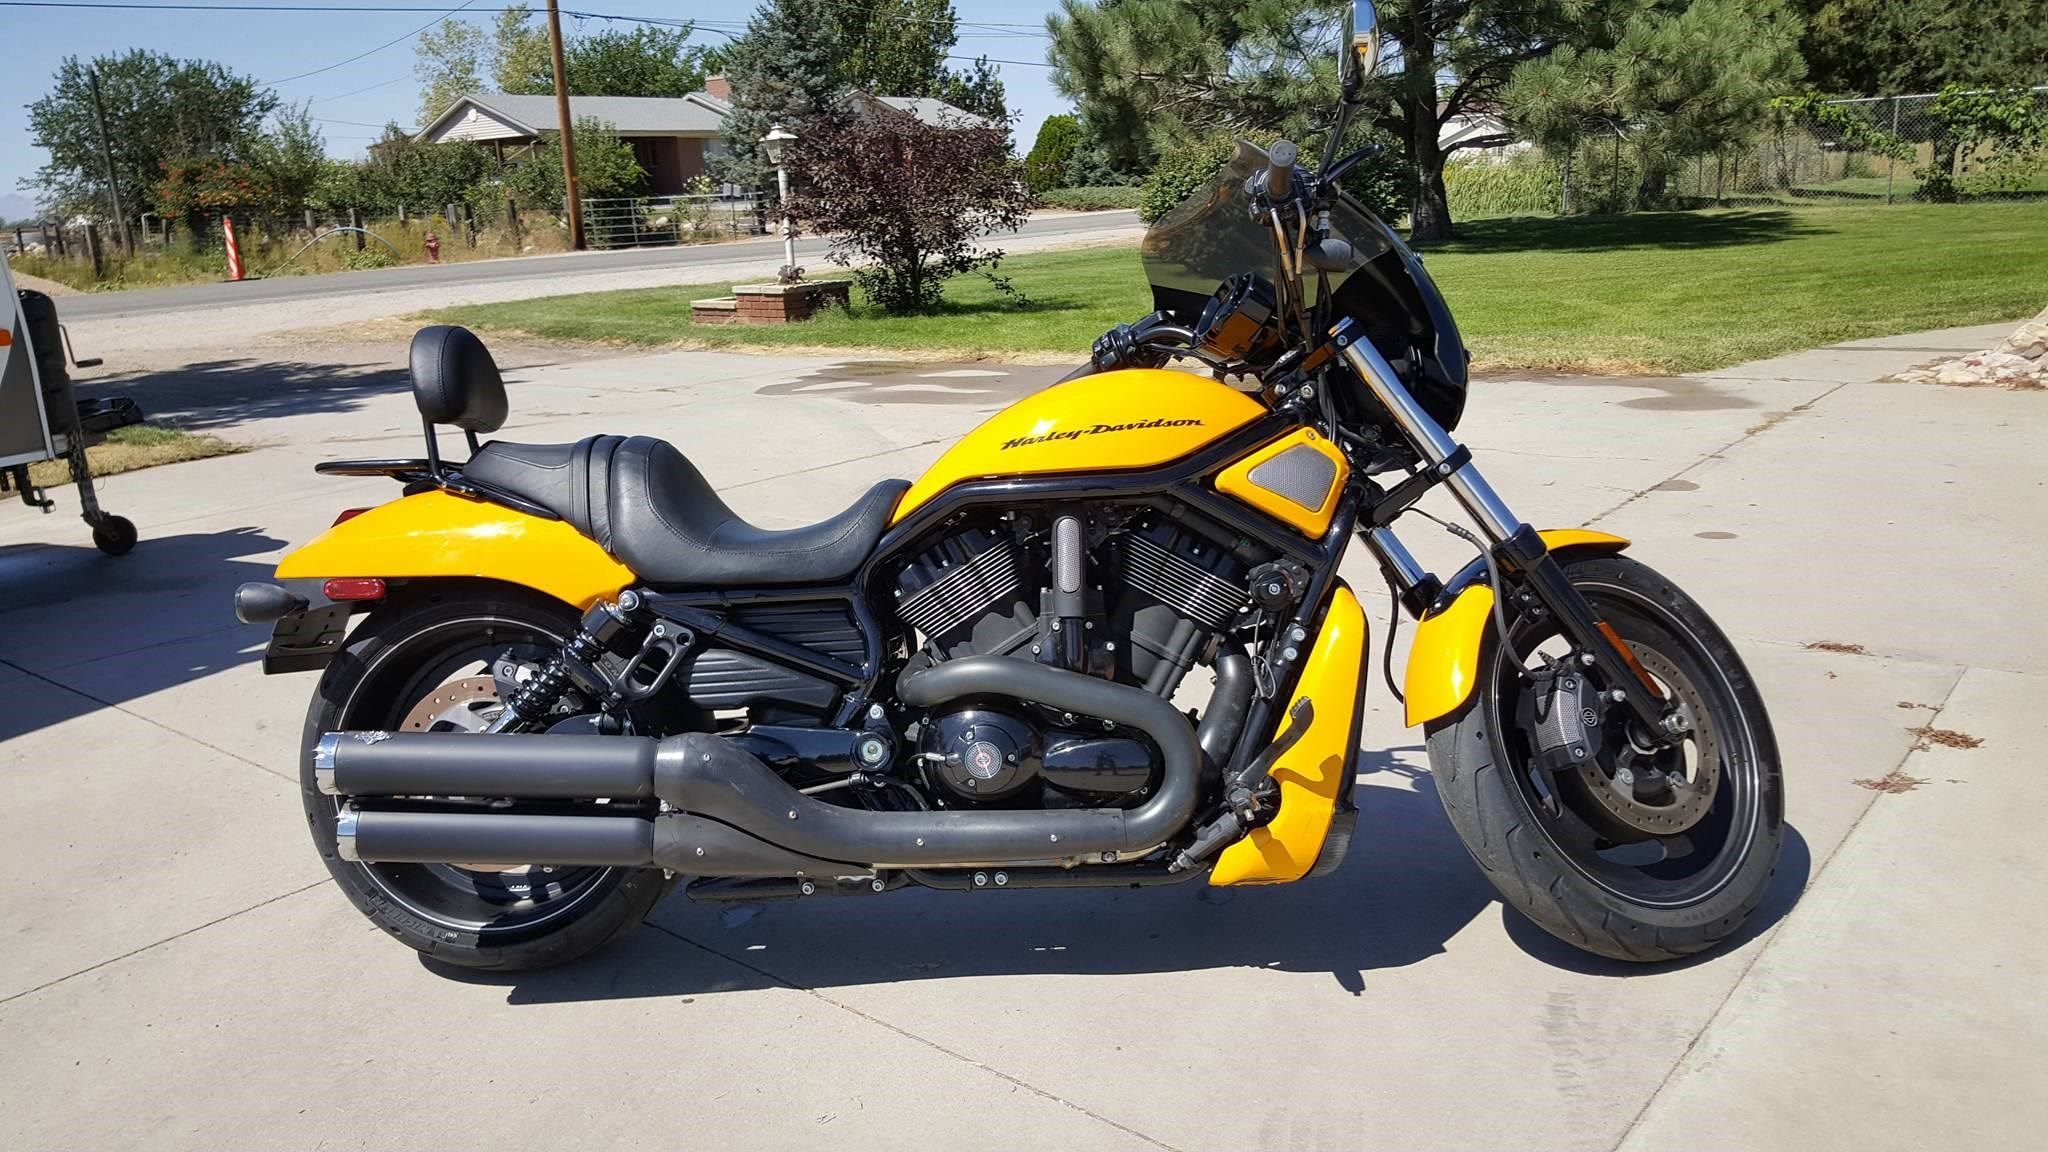 all new used harley davidson v rod night rod 183 bikes page 1 chopperexchange. Black Bedroom Furniture Sets. Home Design Ideas